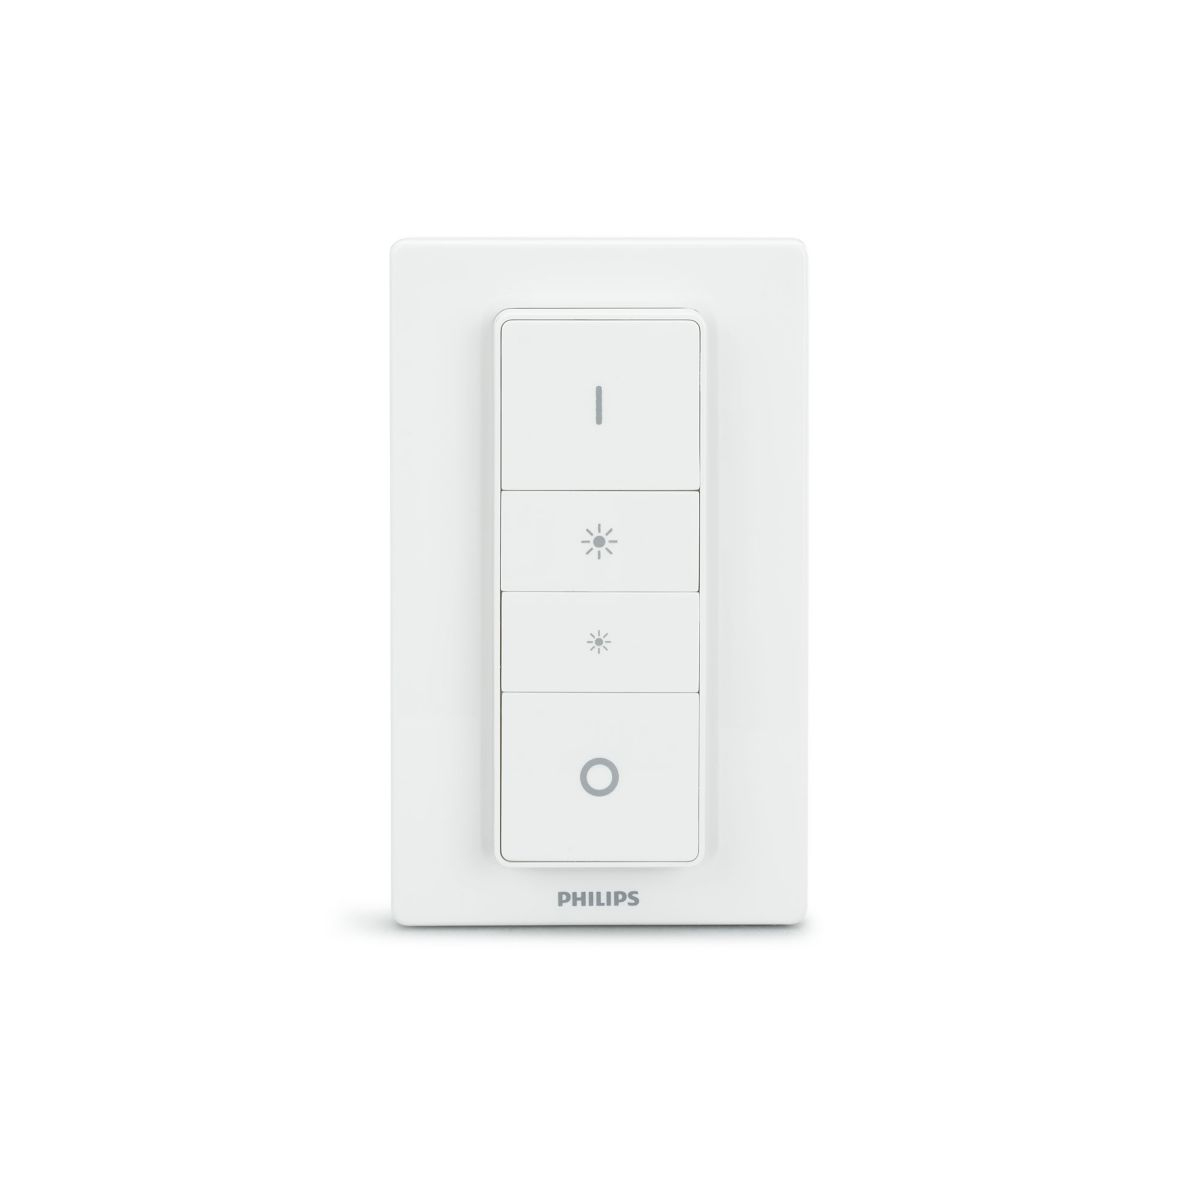 Philips Dimmer Hue Dimmer Switch 8718696752029 Philips